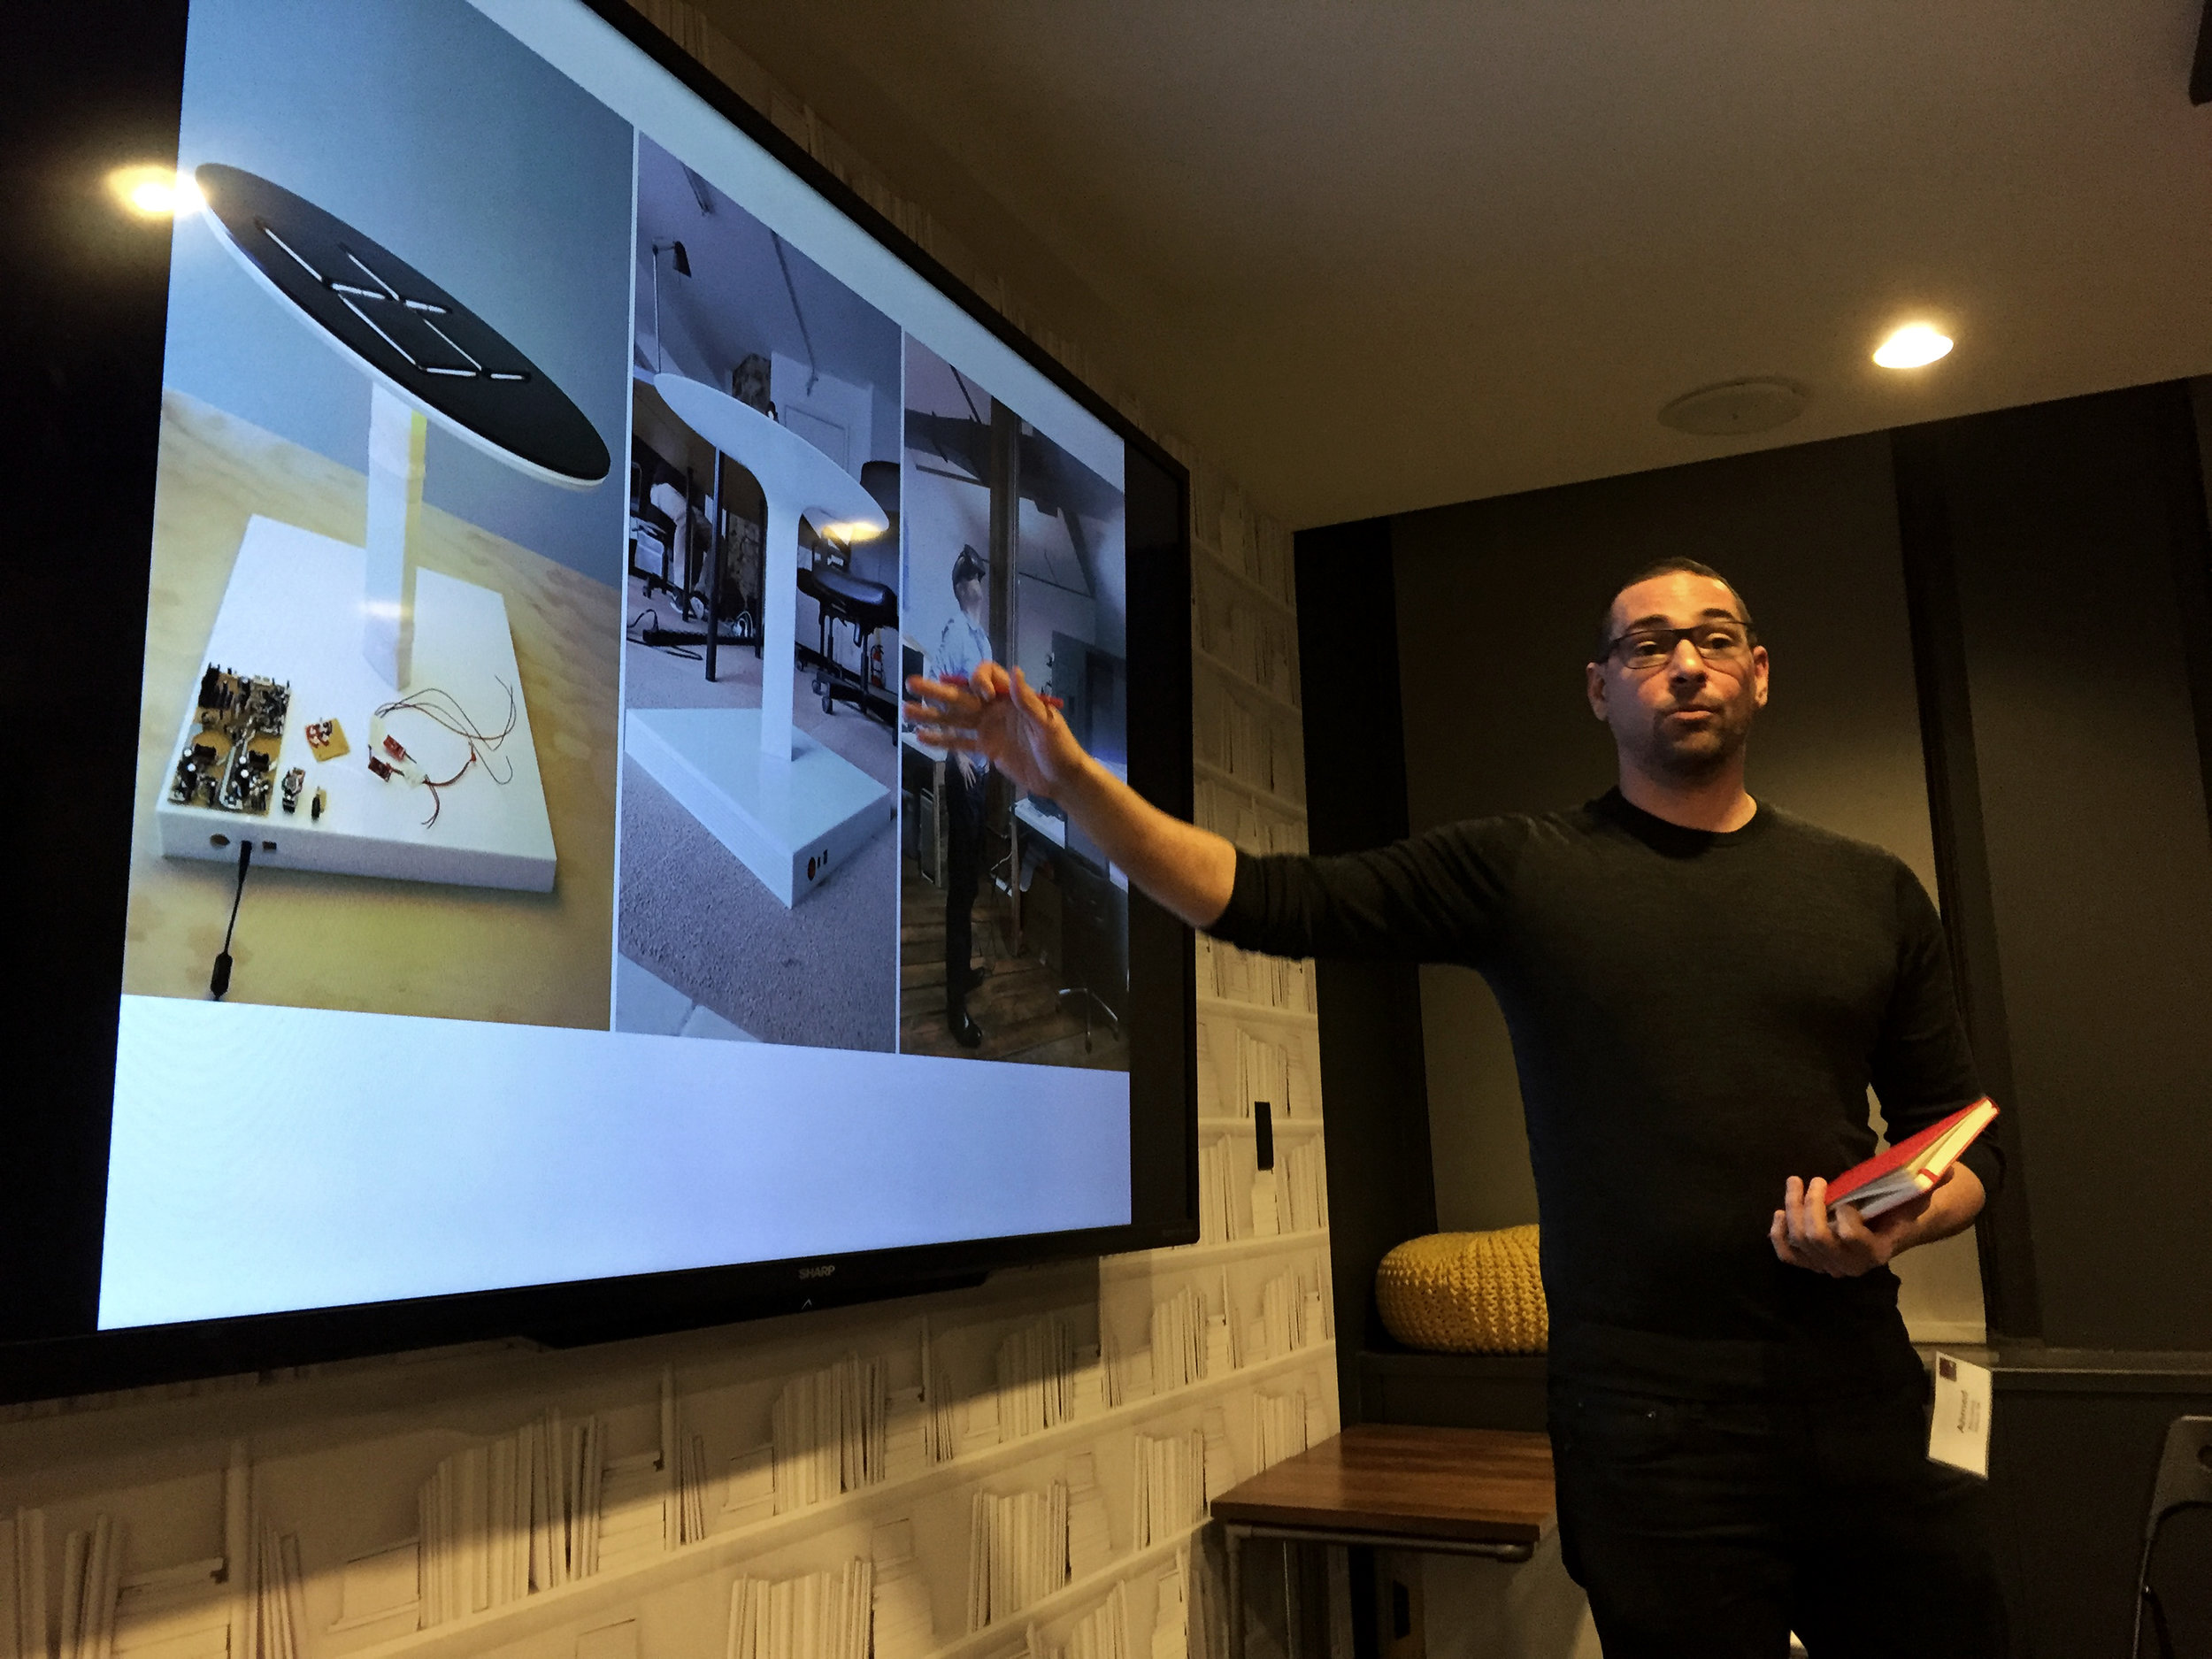 Ahmed Elhusseiny MArch '06 presenting his personal design work.